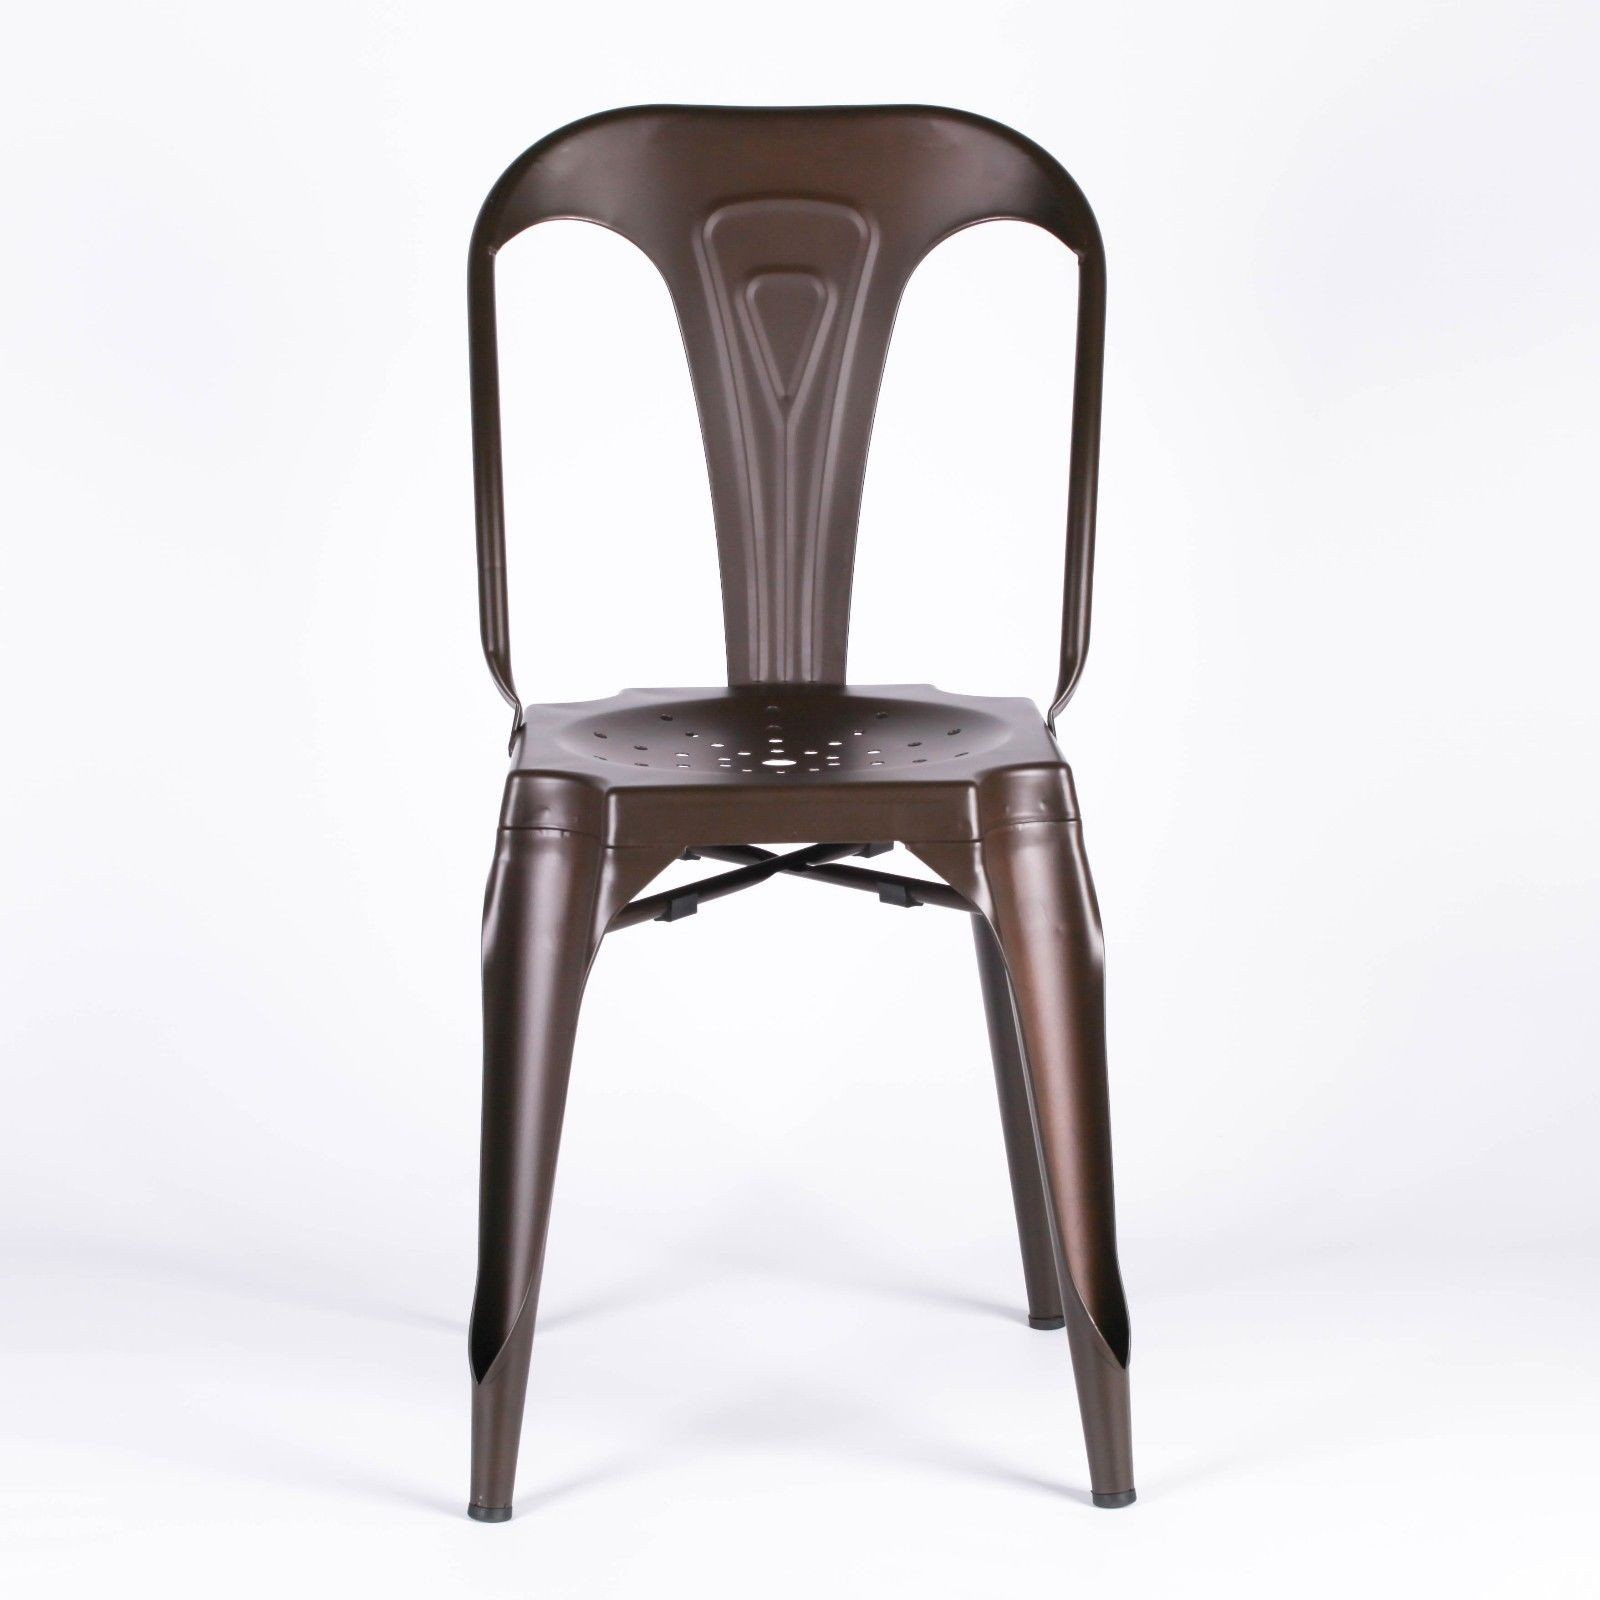 industrial tolix inspired metal zinc effect dining chair furniture la maison chic luxury interiors. Black Bedroom Furniture Sets. Home Design Ideas